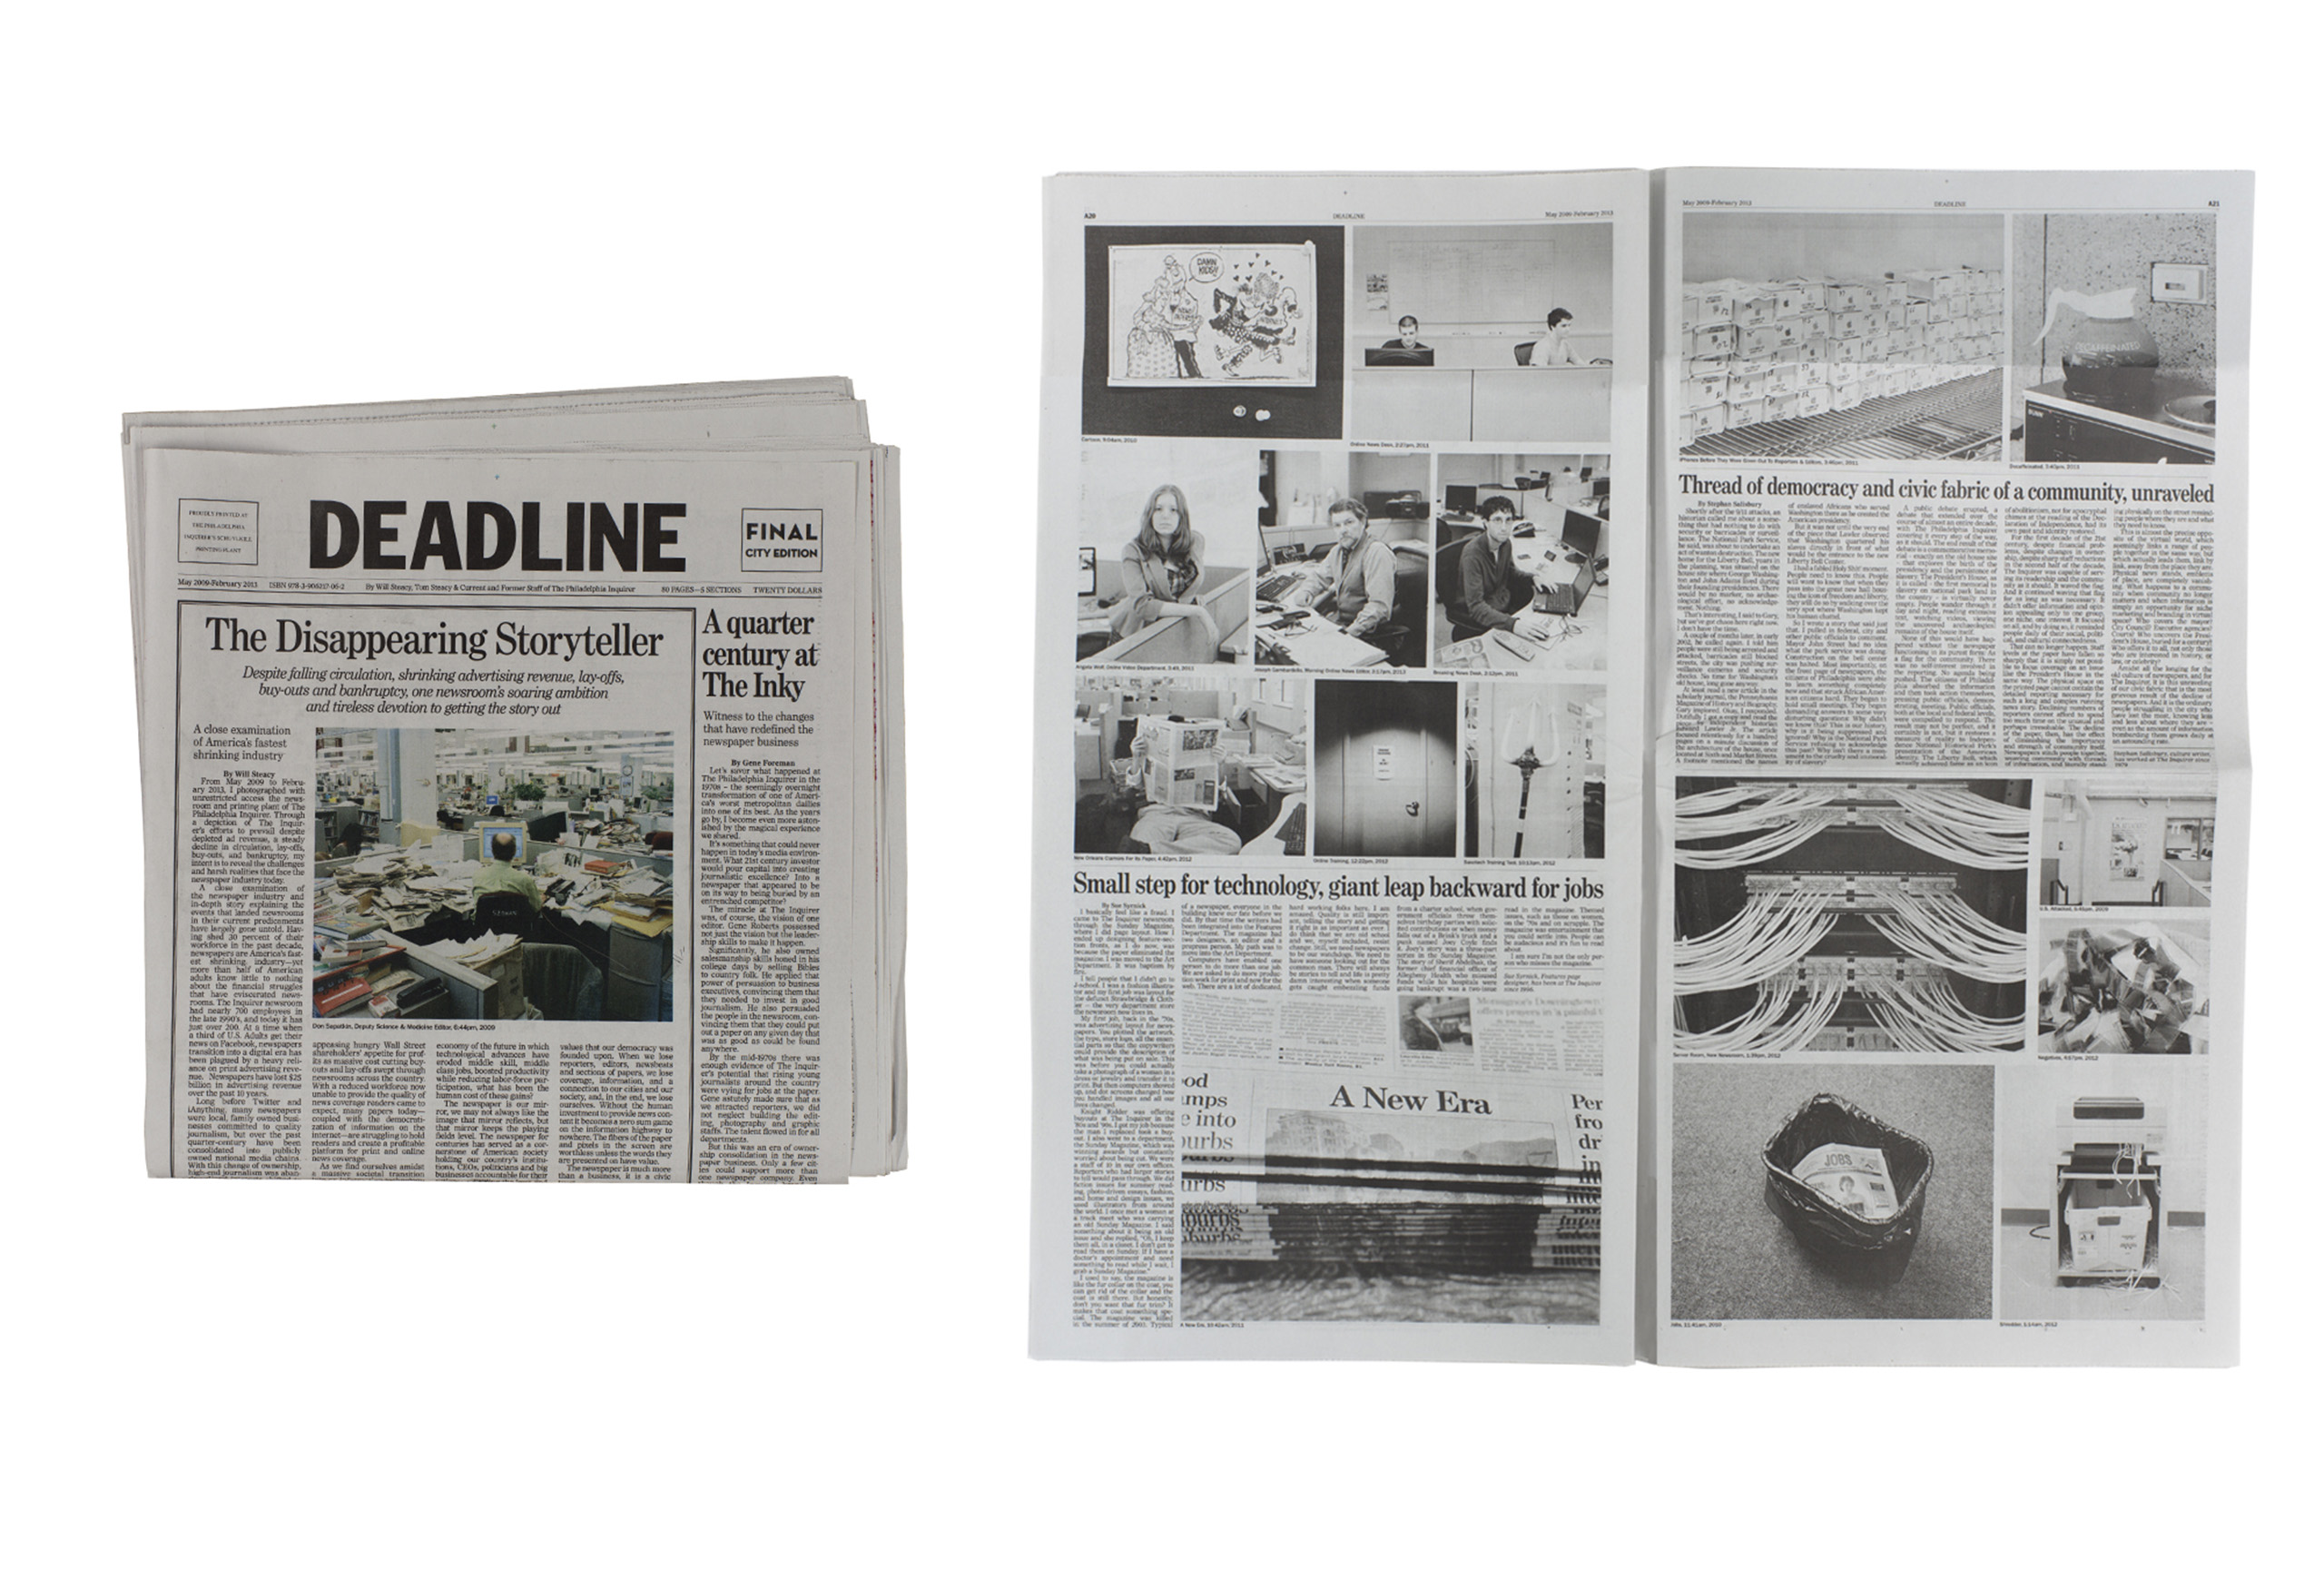 Deadline by Will Steacy, published by b.frank books.  Special Jurors' mention for PhotoBook of the Year.